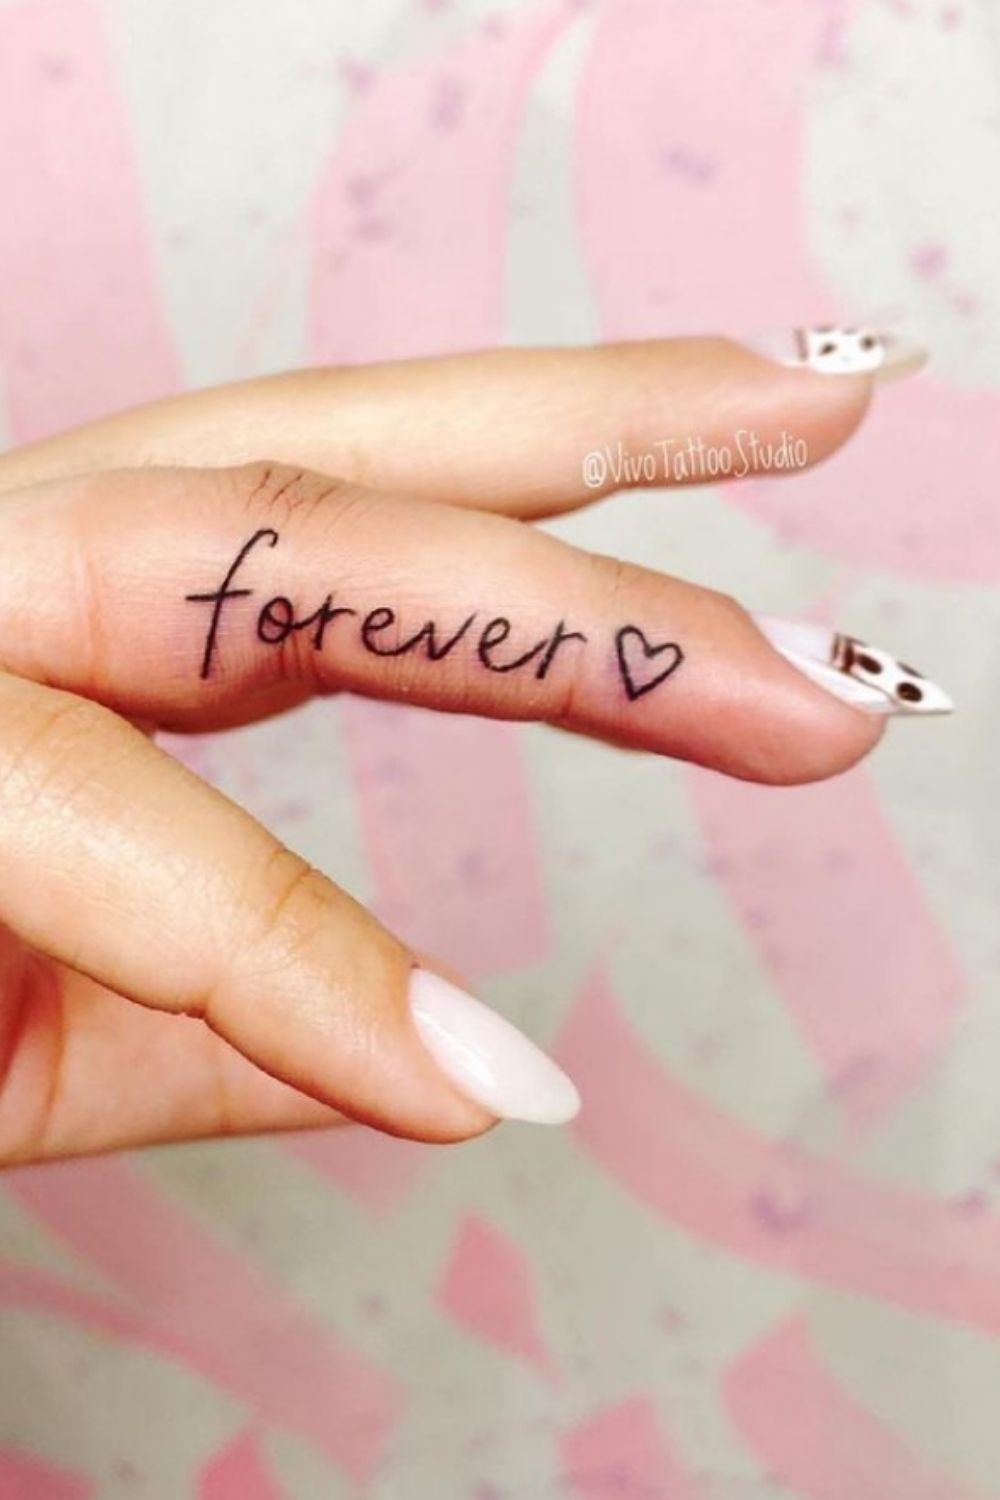 Small letter tattoo |Little tattoos and symbols for girls